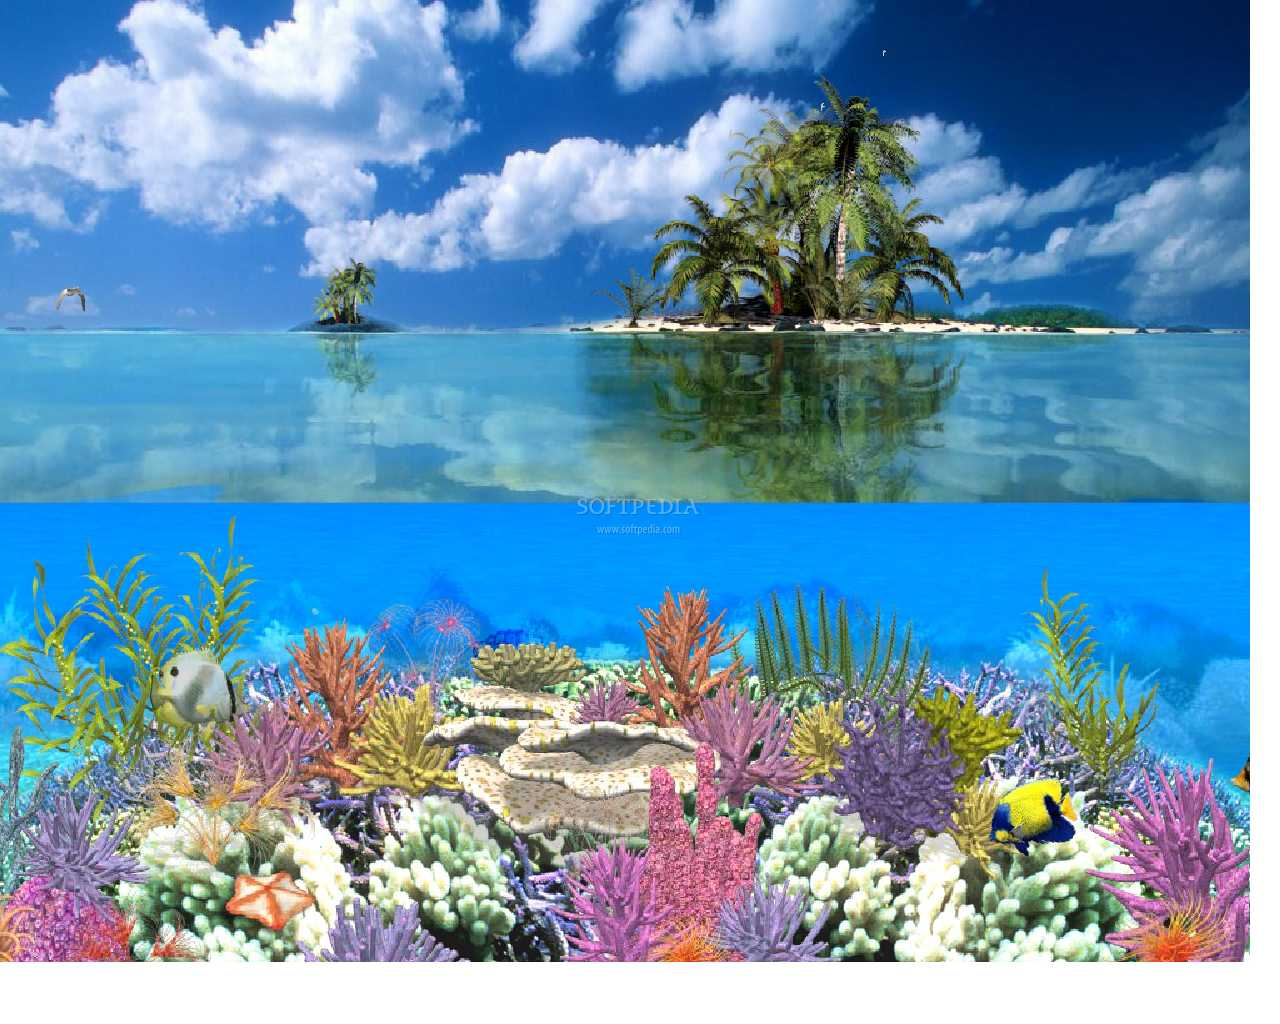 Hd Tropical Island Beach Paradise Wallpapers And Backgrounds: Island Backgrounds For Desktop